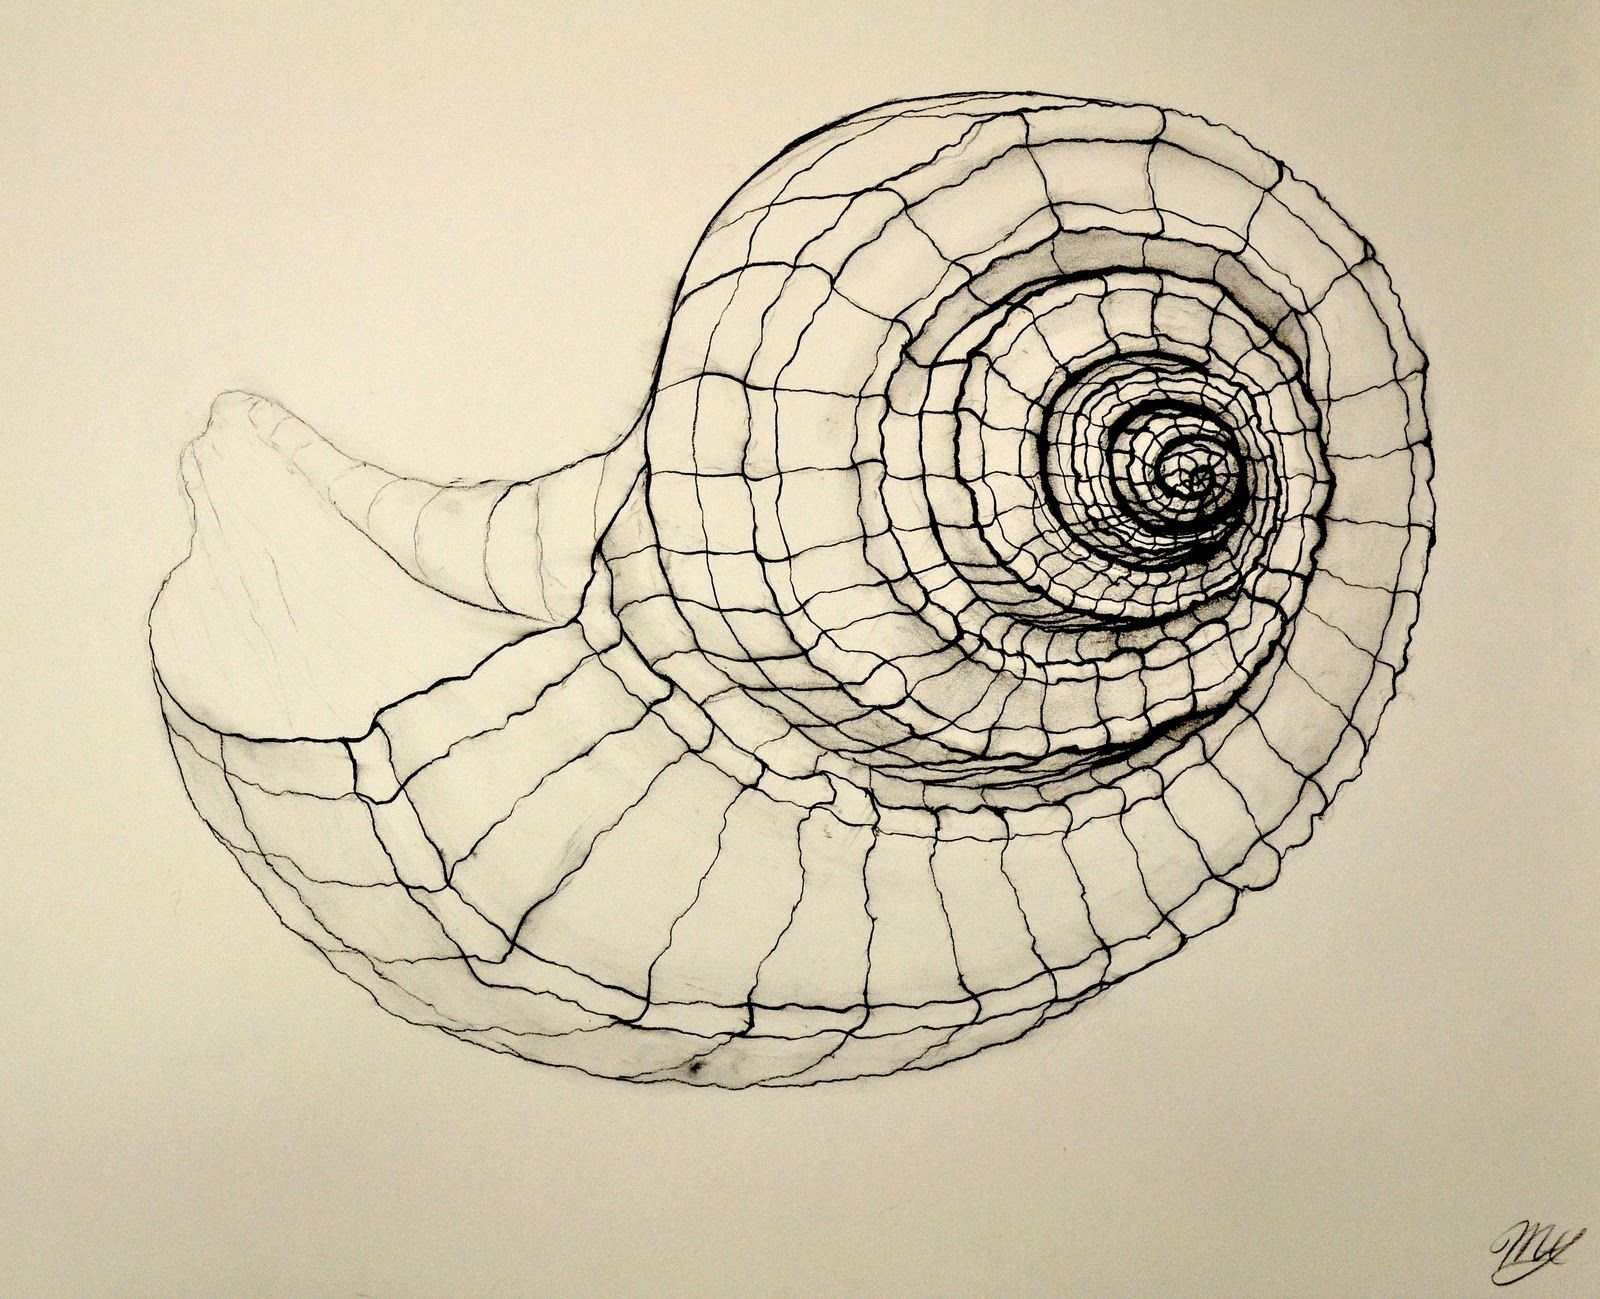 Contour Line Drawing Ideas : Pin by annette bukovinsky on shells pinterest shell